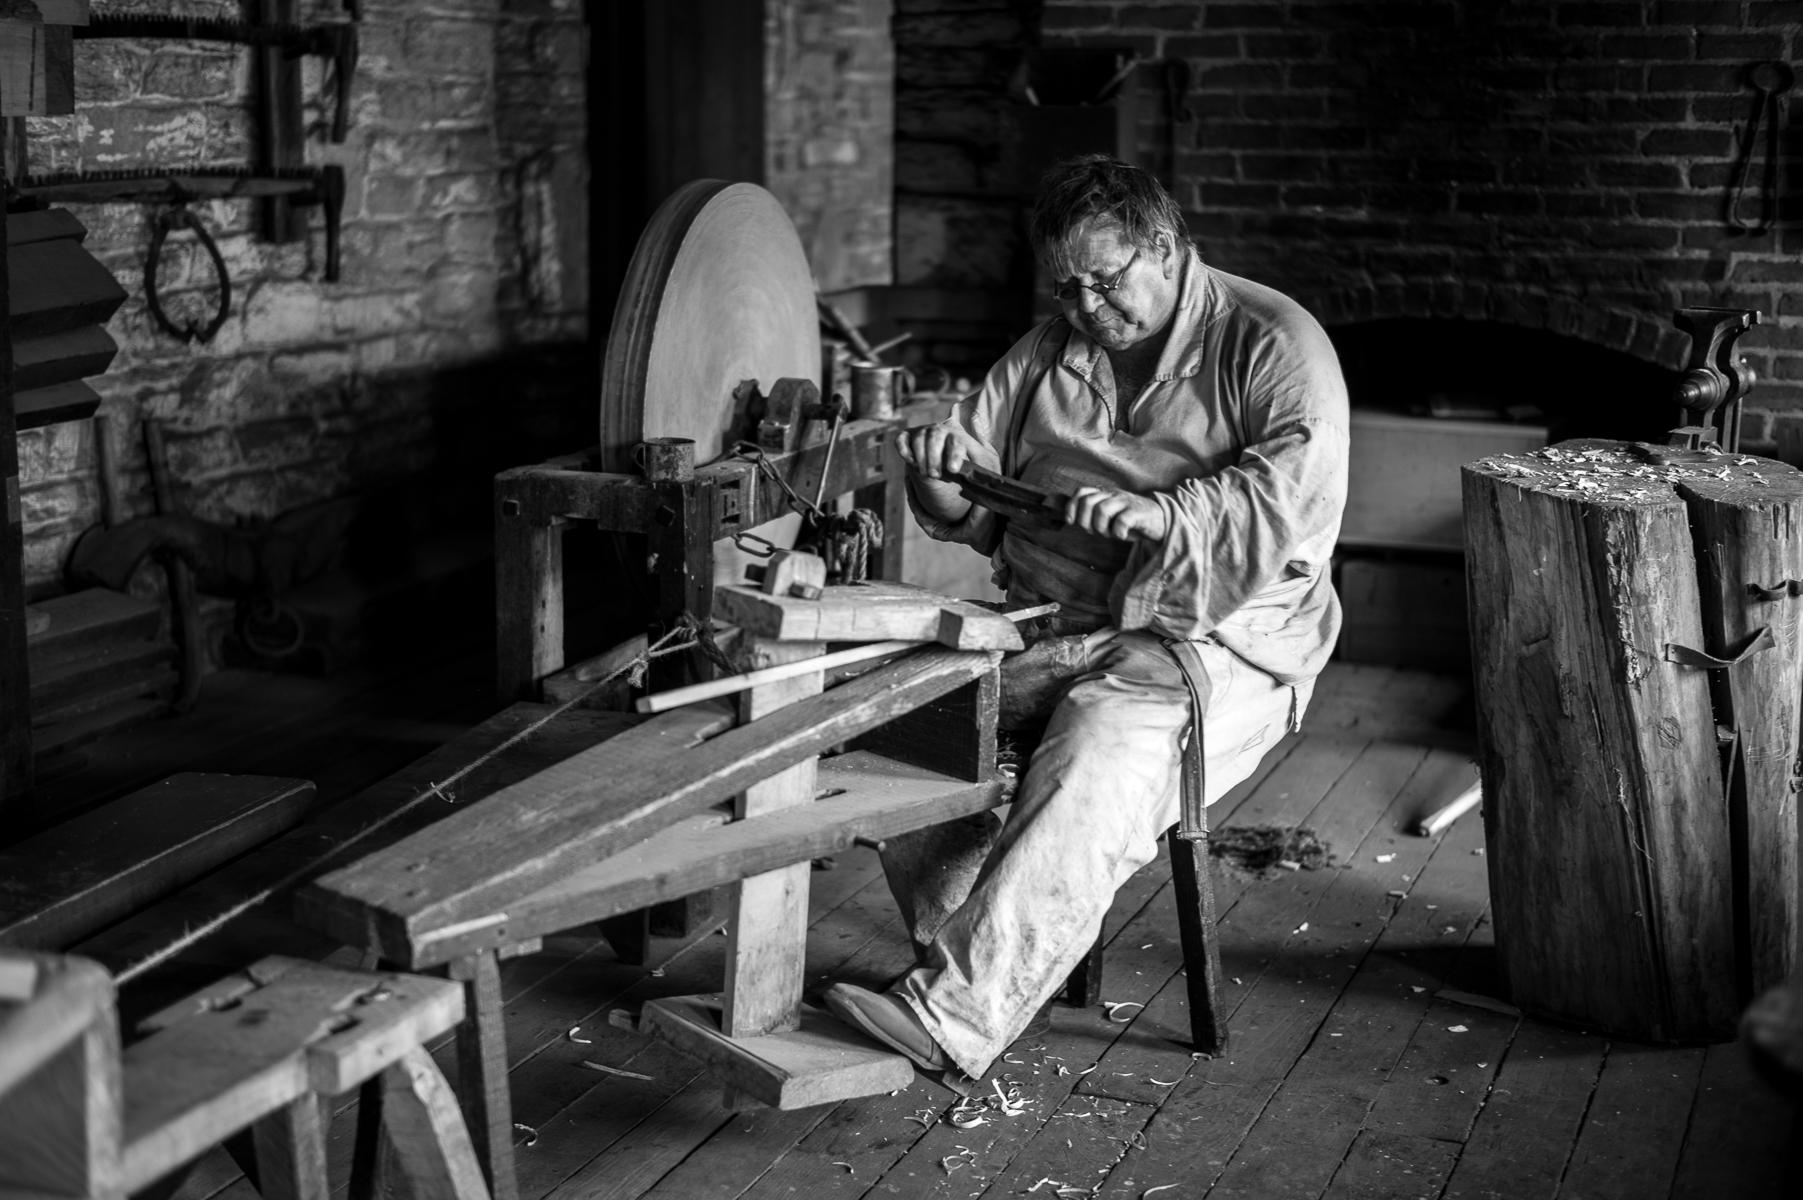 Spindle Maker, Ft. Snelling, Minnesota : street & stories : TIMOTHY FLOYD PHOTOGRAPHER, NATURE PHOTOGRAPHY, PHOTO ESSAYS, PHOTOJOURNALISM